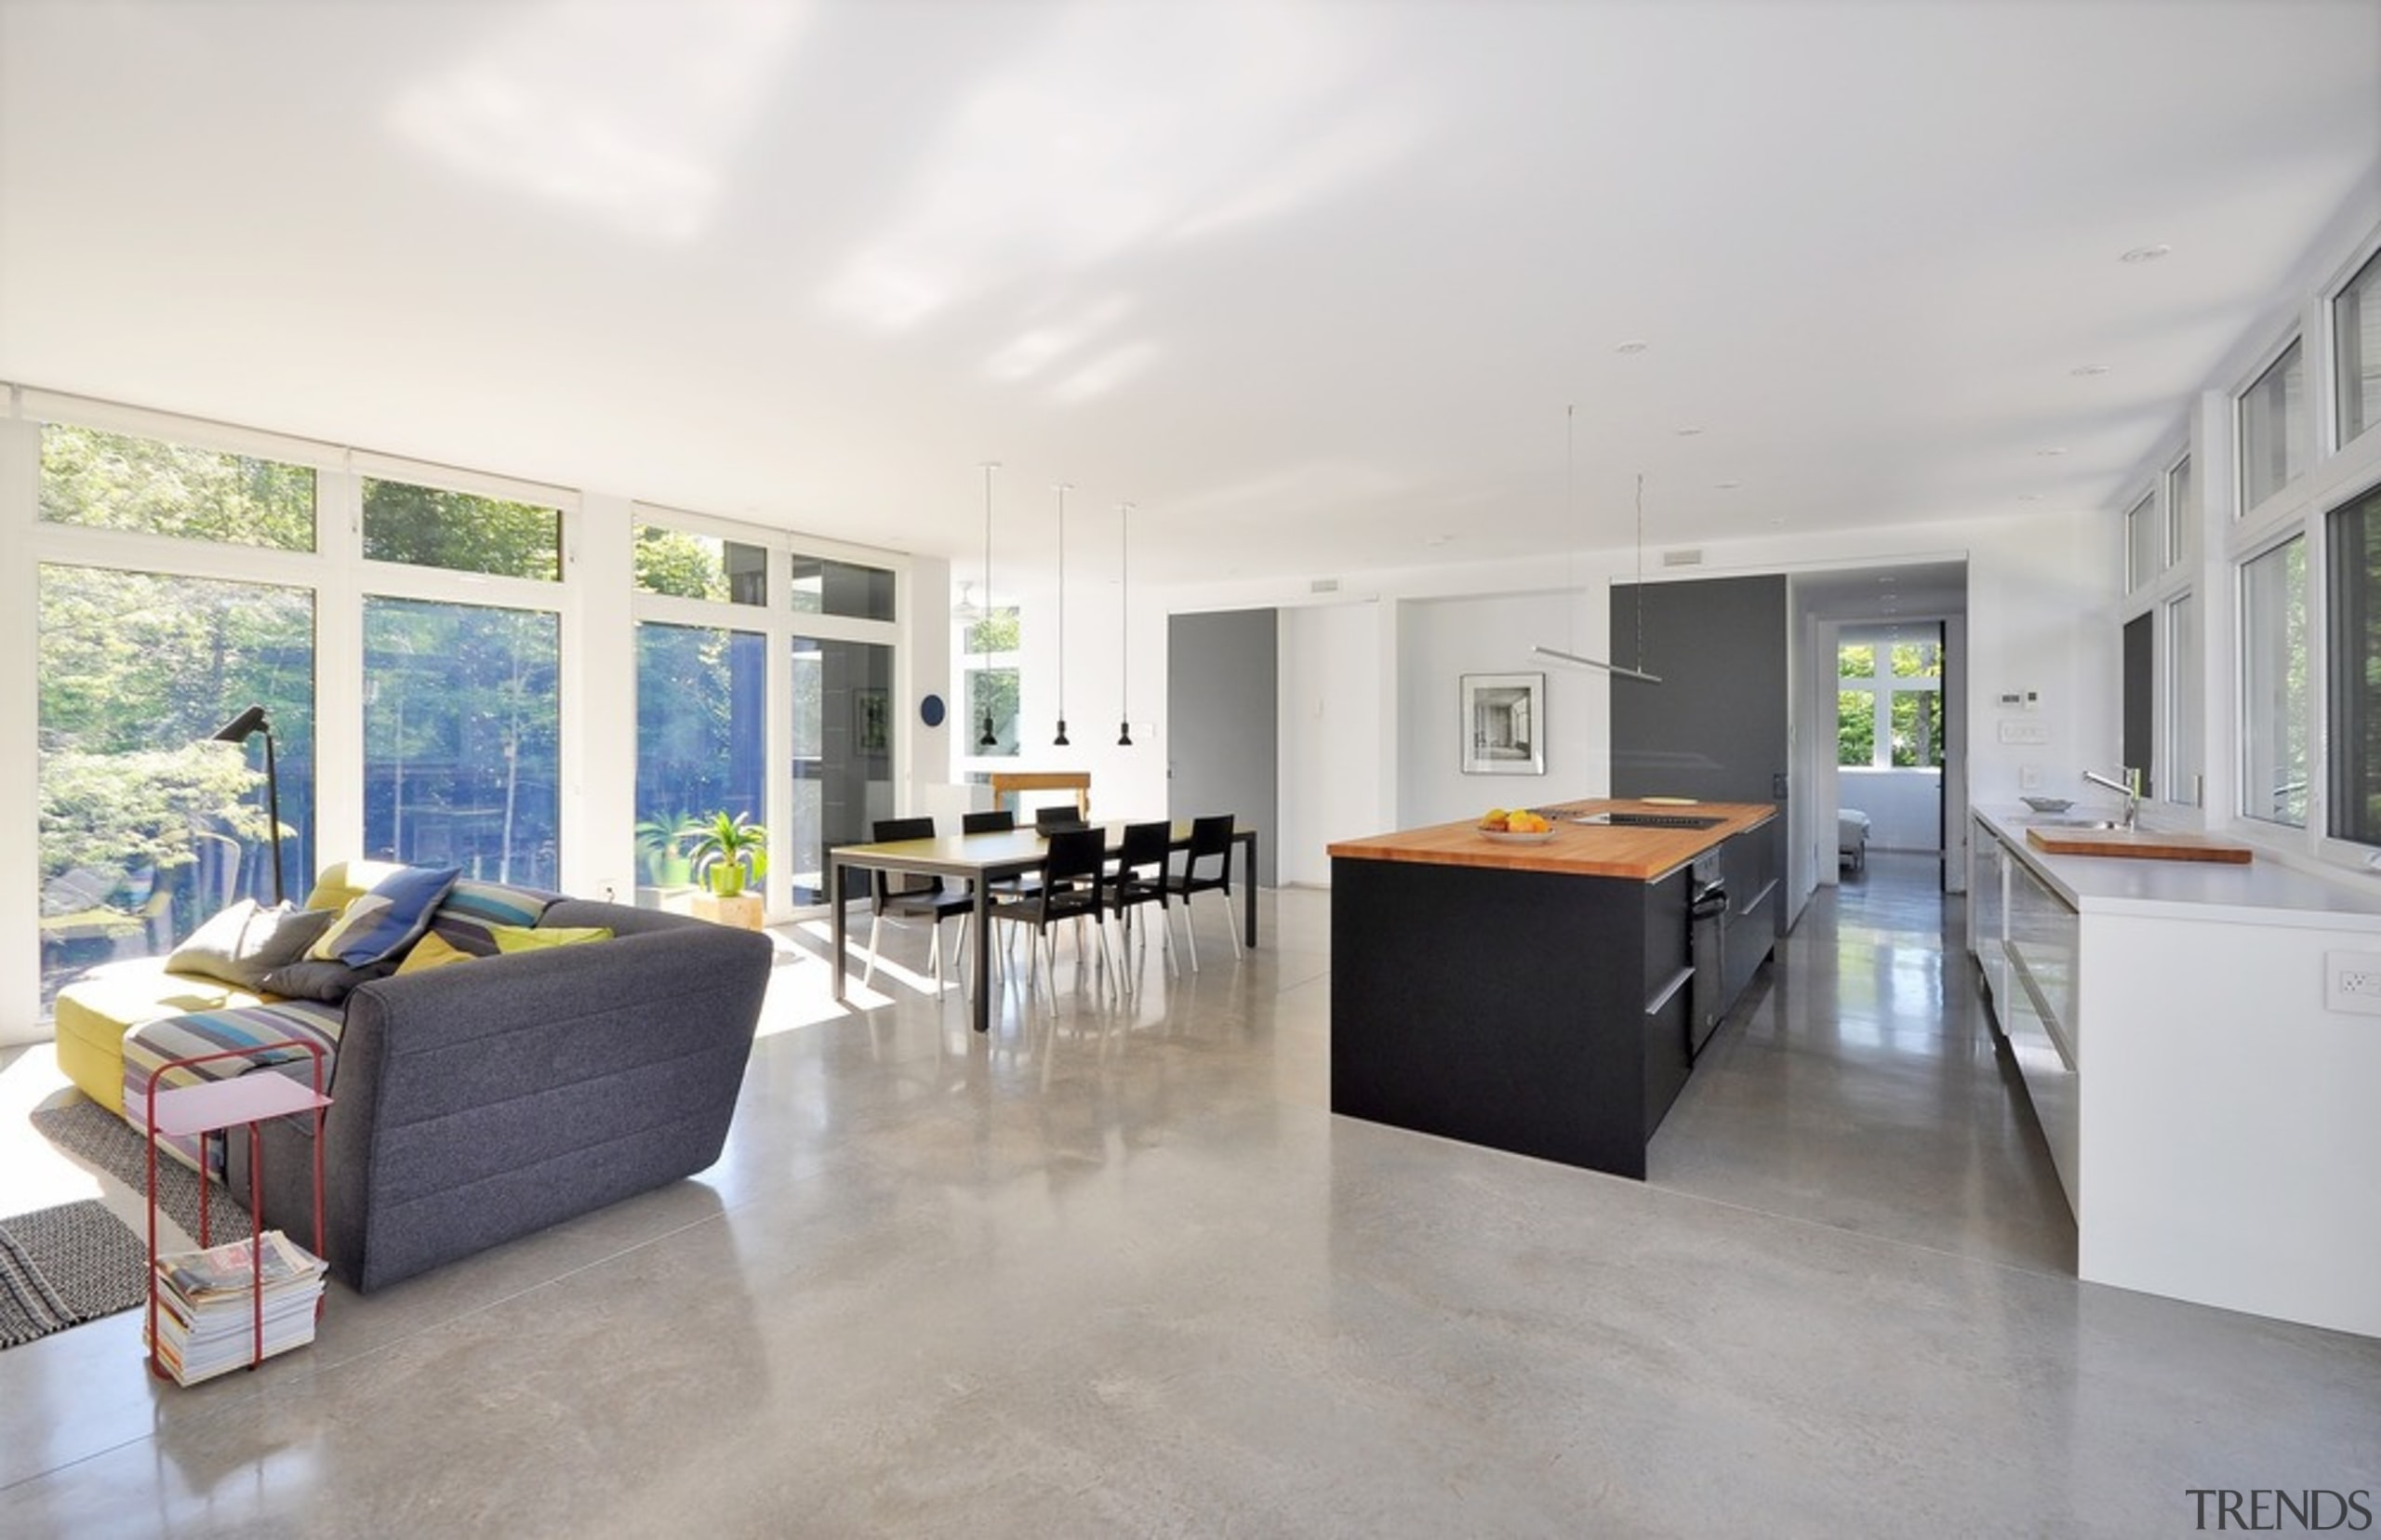 A central block containing the pantry, storage spaces architecture, ceiling, floor, flooring, house, interior design, living room, property, real estate, white, gray